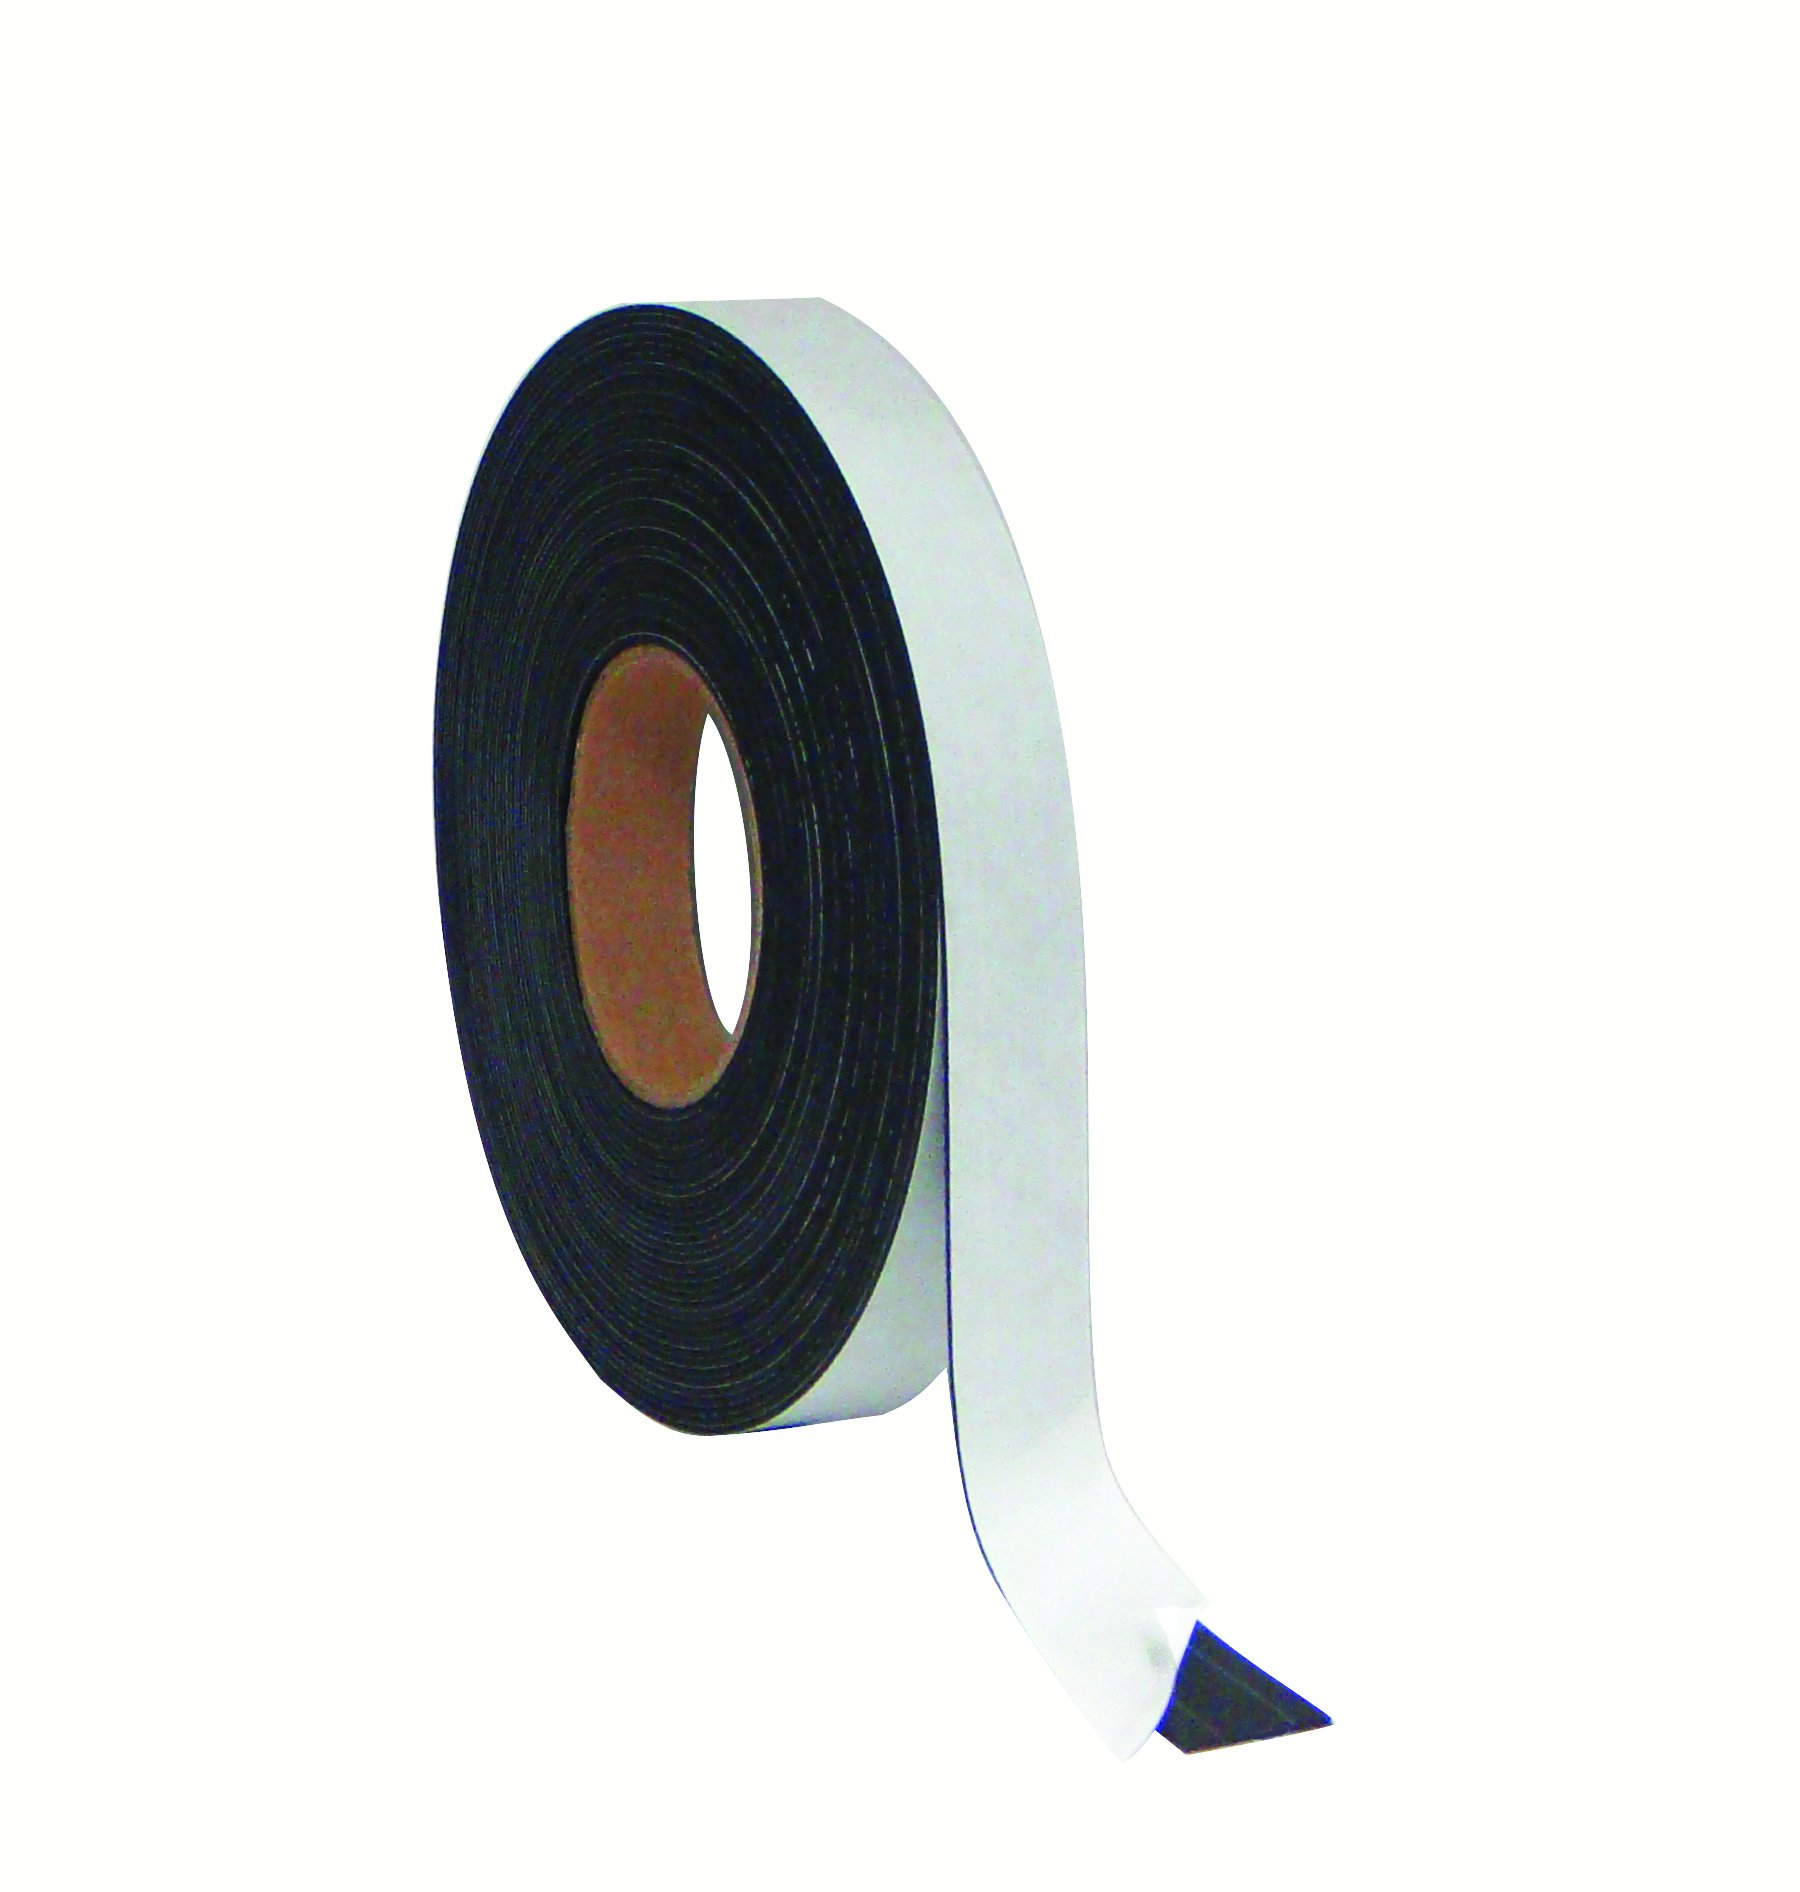 MasterVision Tape Roll Adhesive Magnetic, 1'' x 50', Black by MasterVision